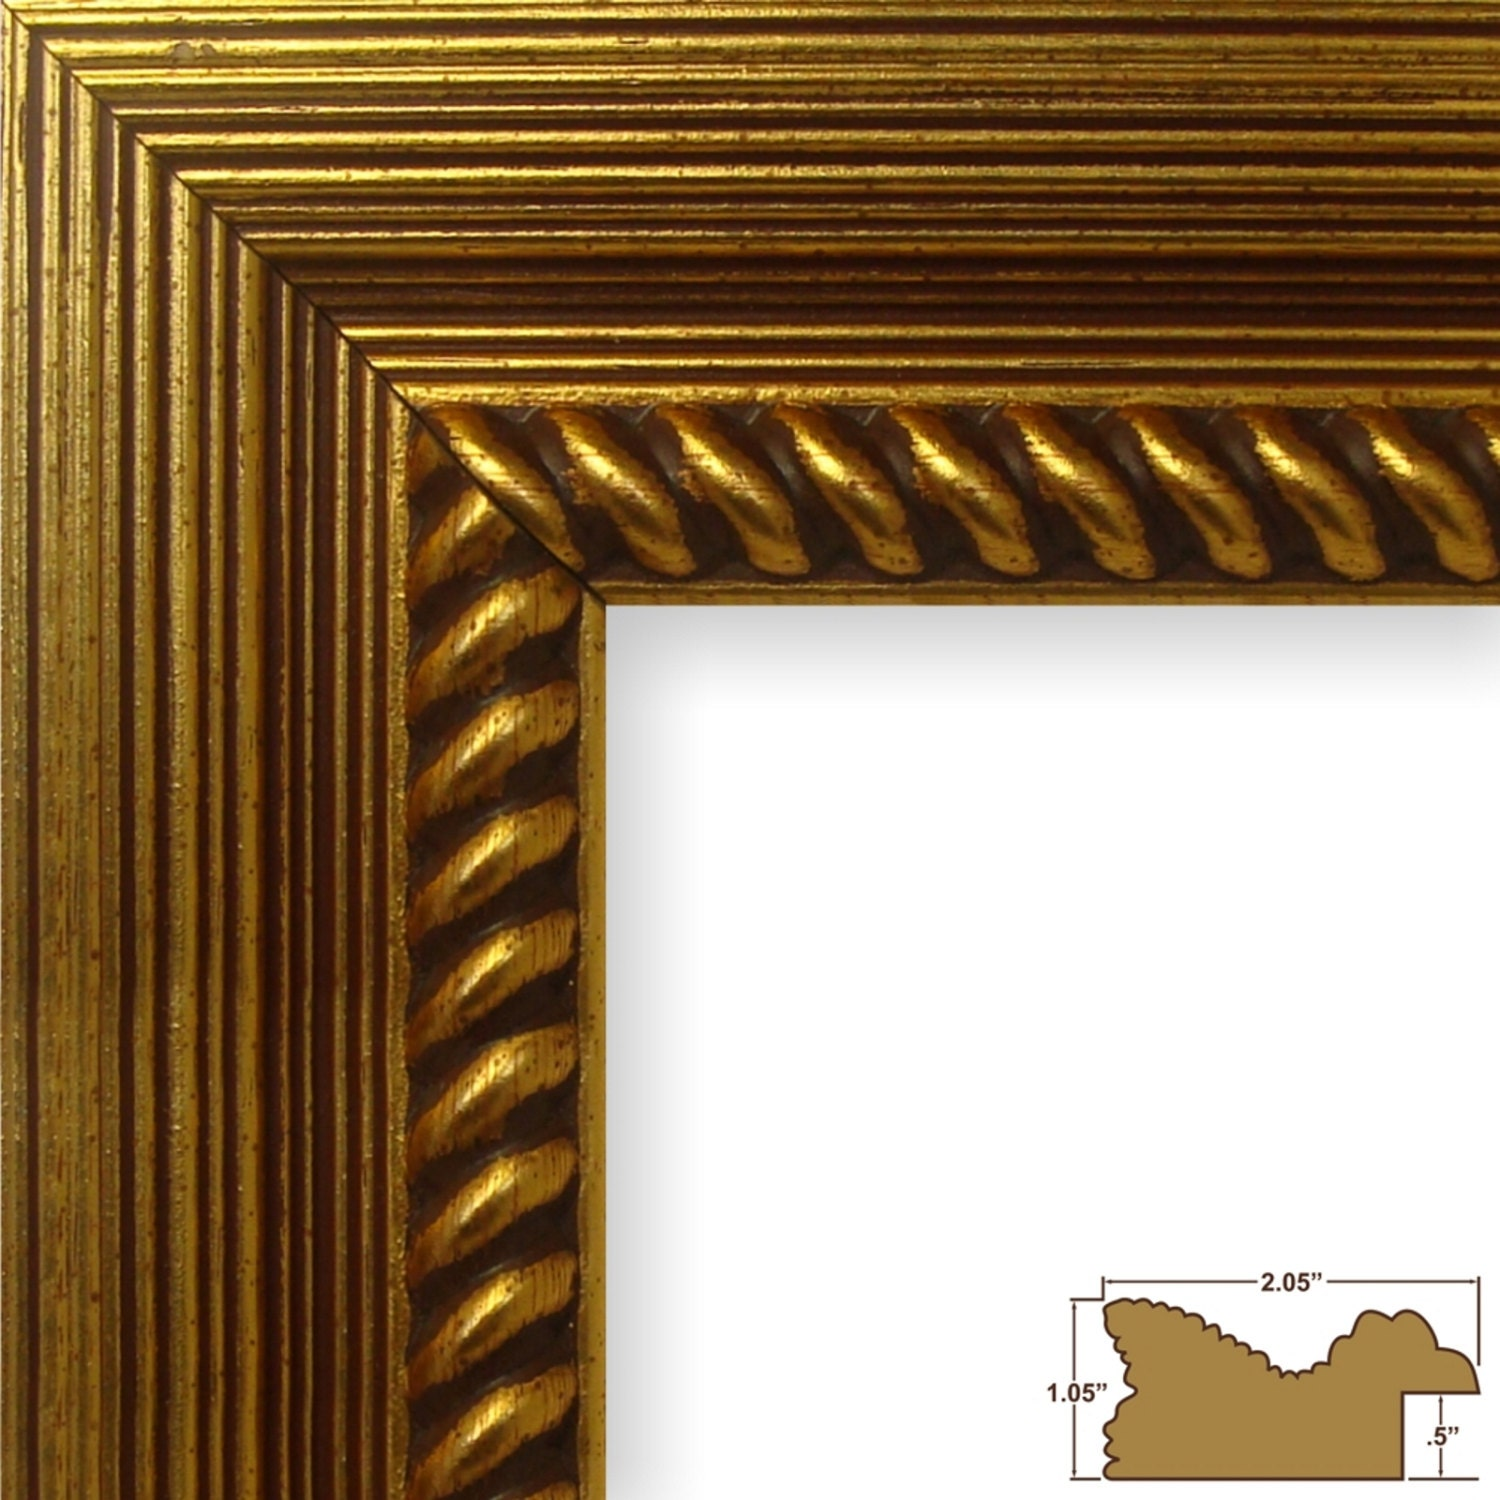 Craig frames 20x20 inch rustic antique gold picture frame sold by craigframes jeuxipadfo Image collections